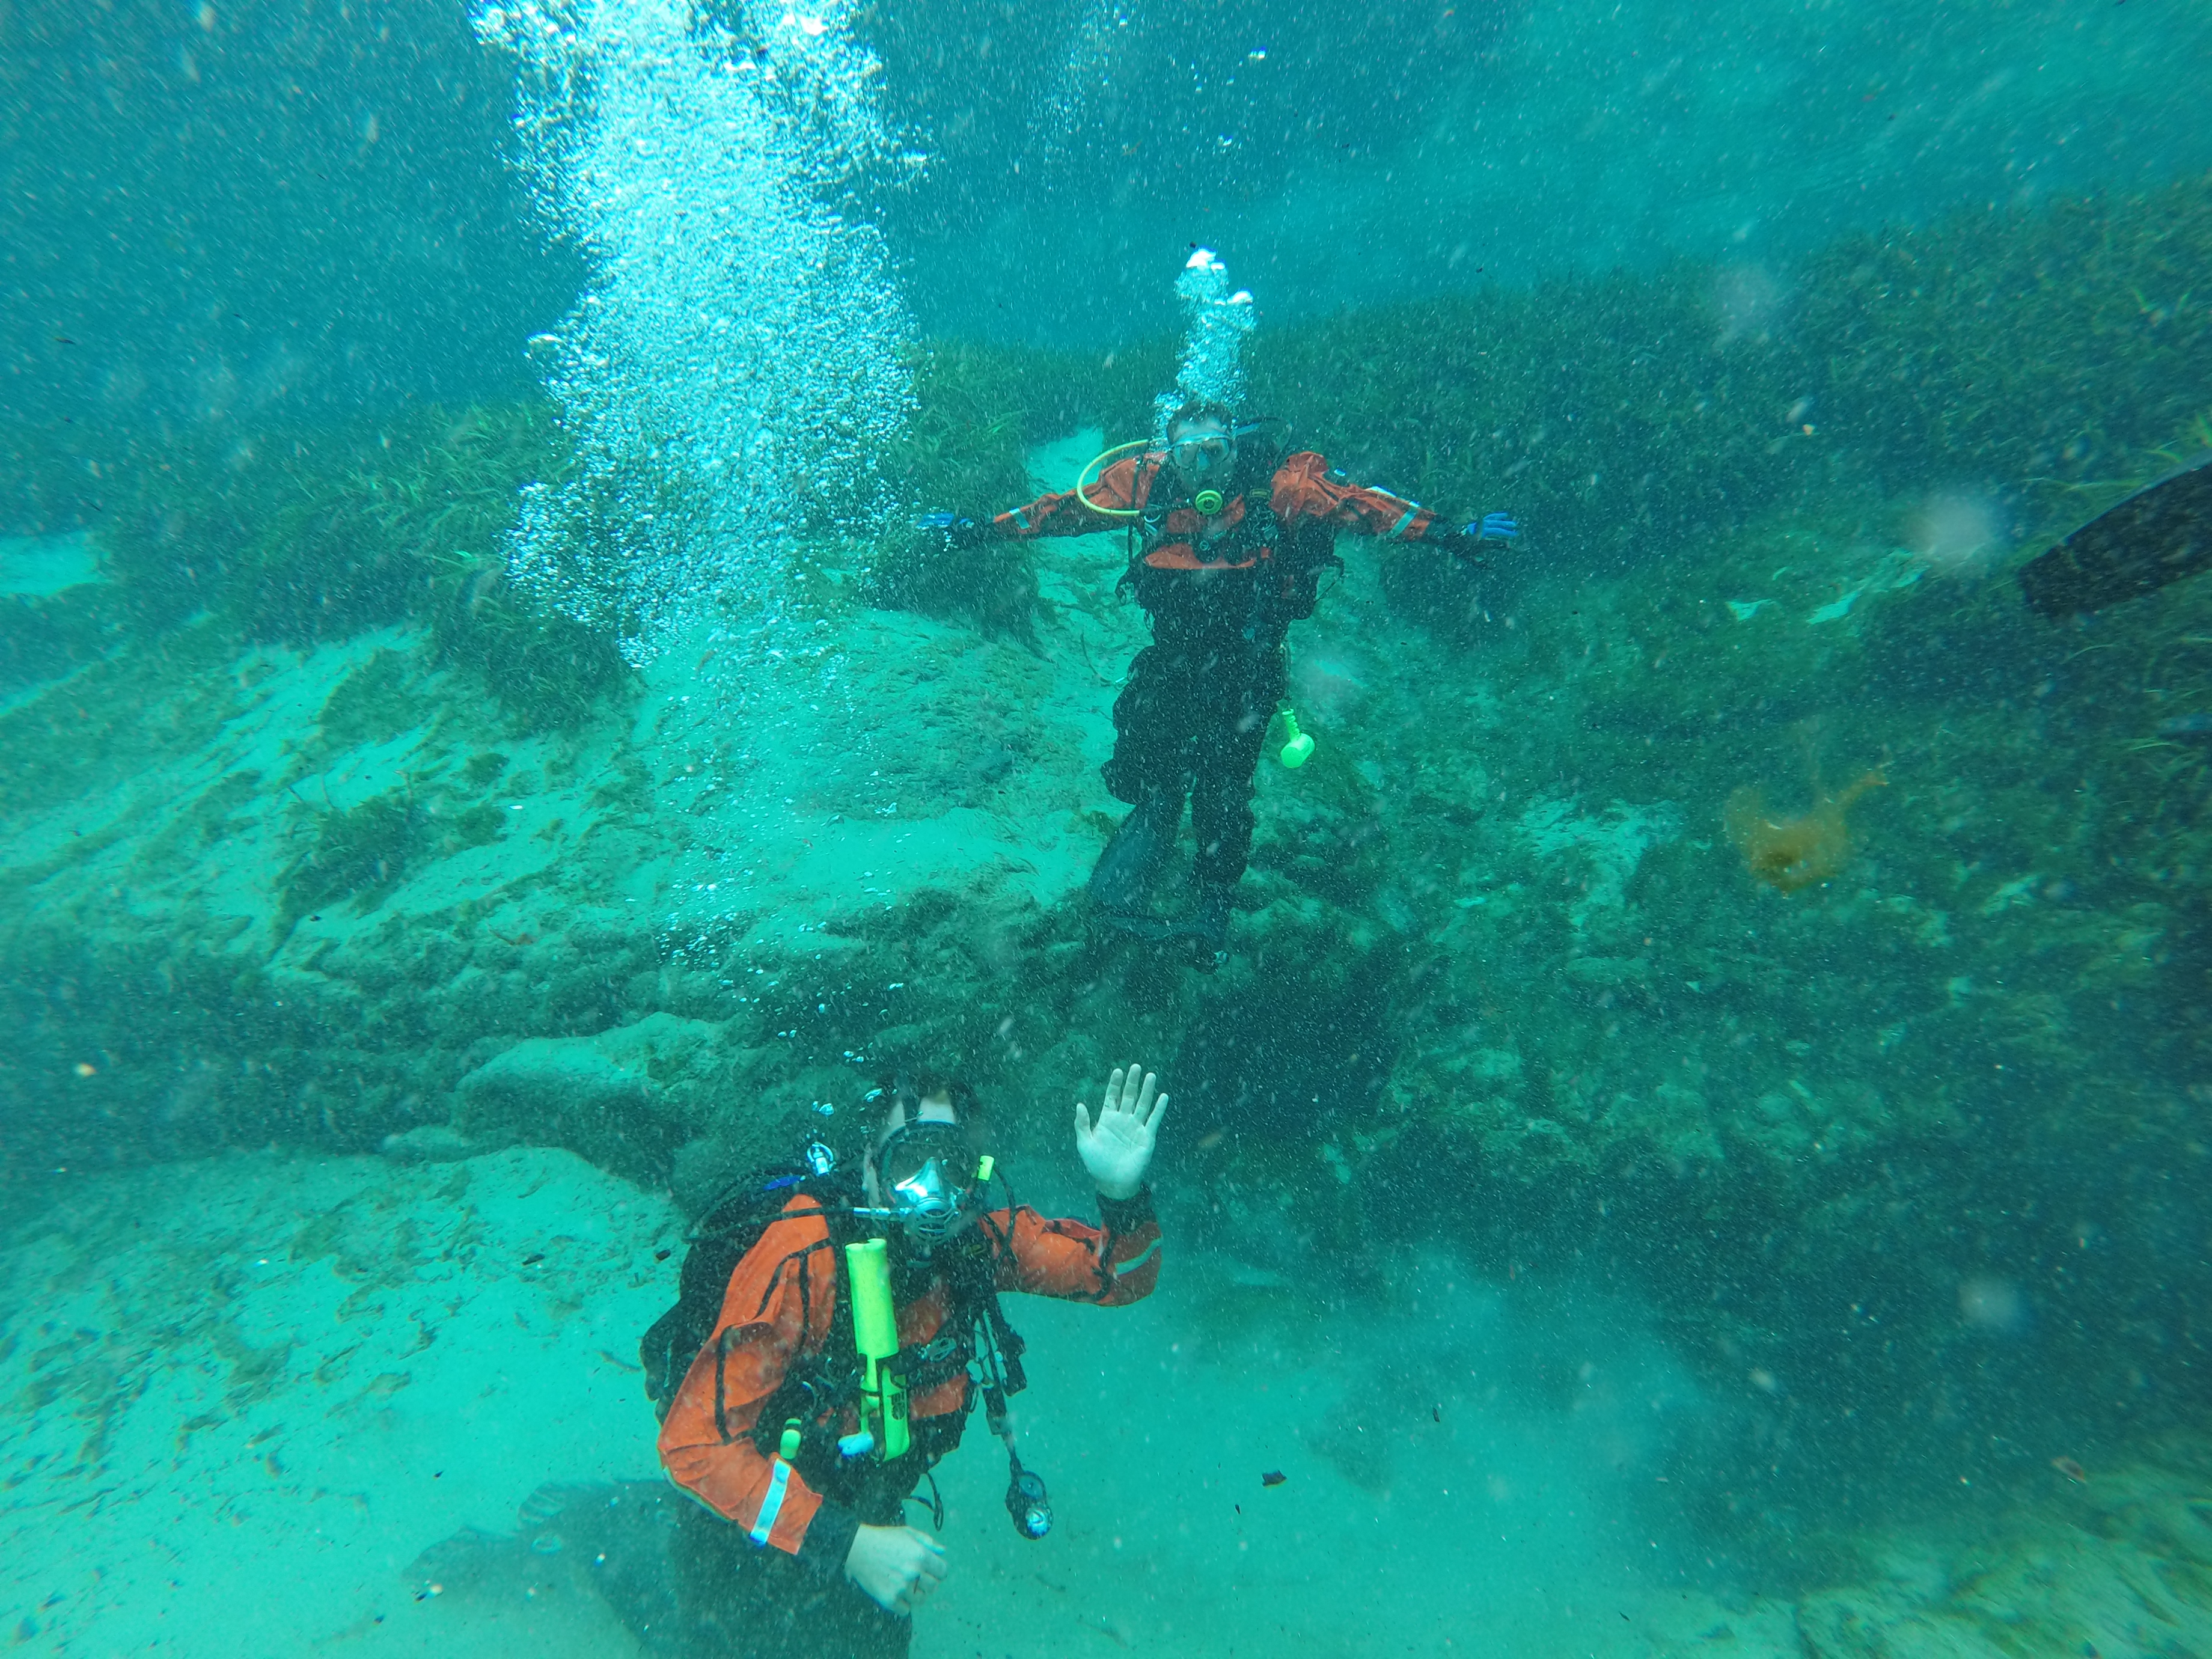 Divers under water with their scuba gear on